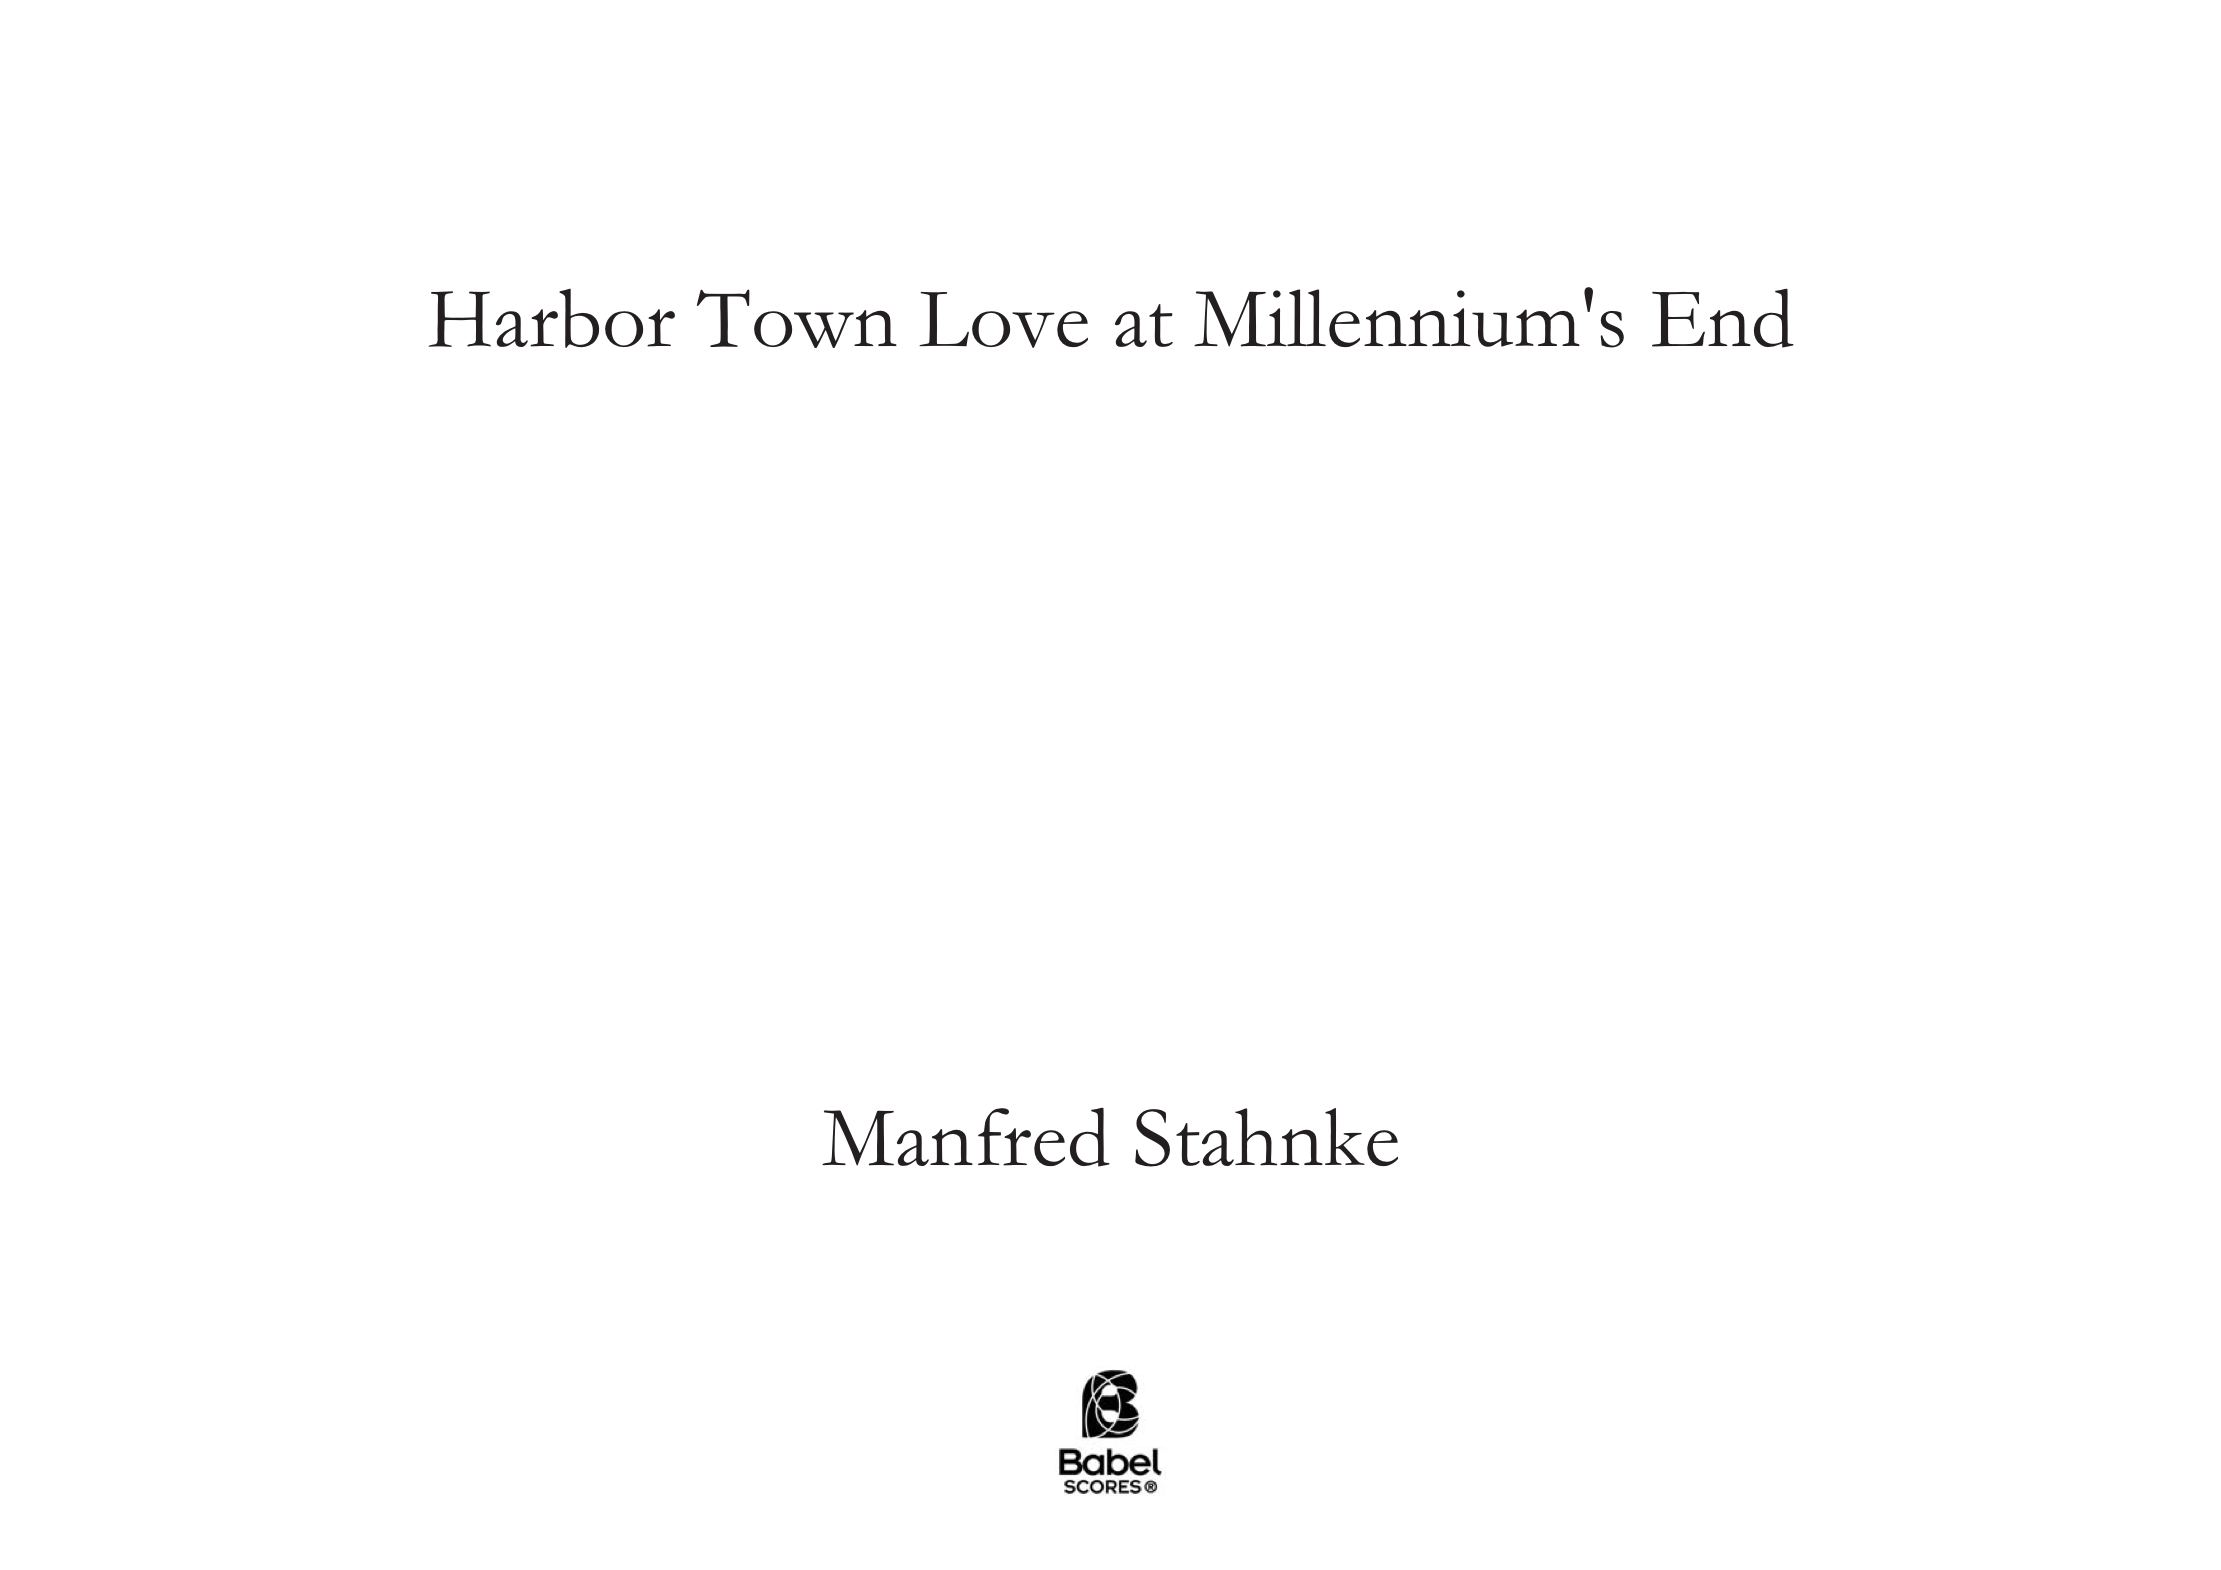 Harbor Town A4 z 3 282 1 685